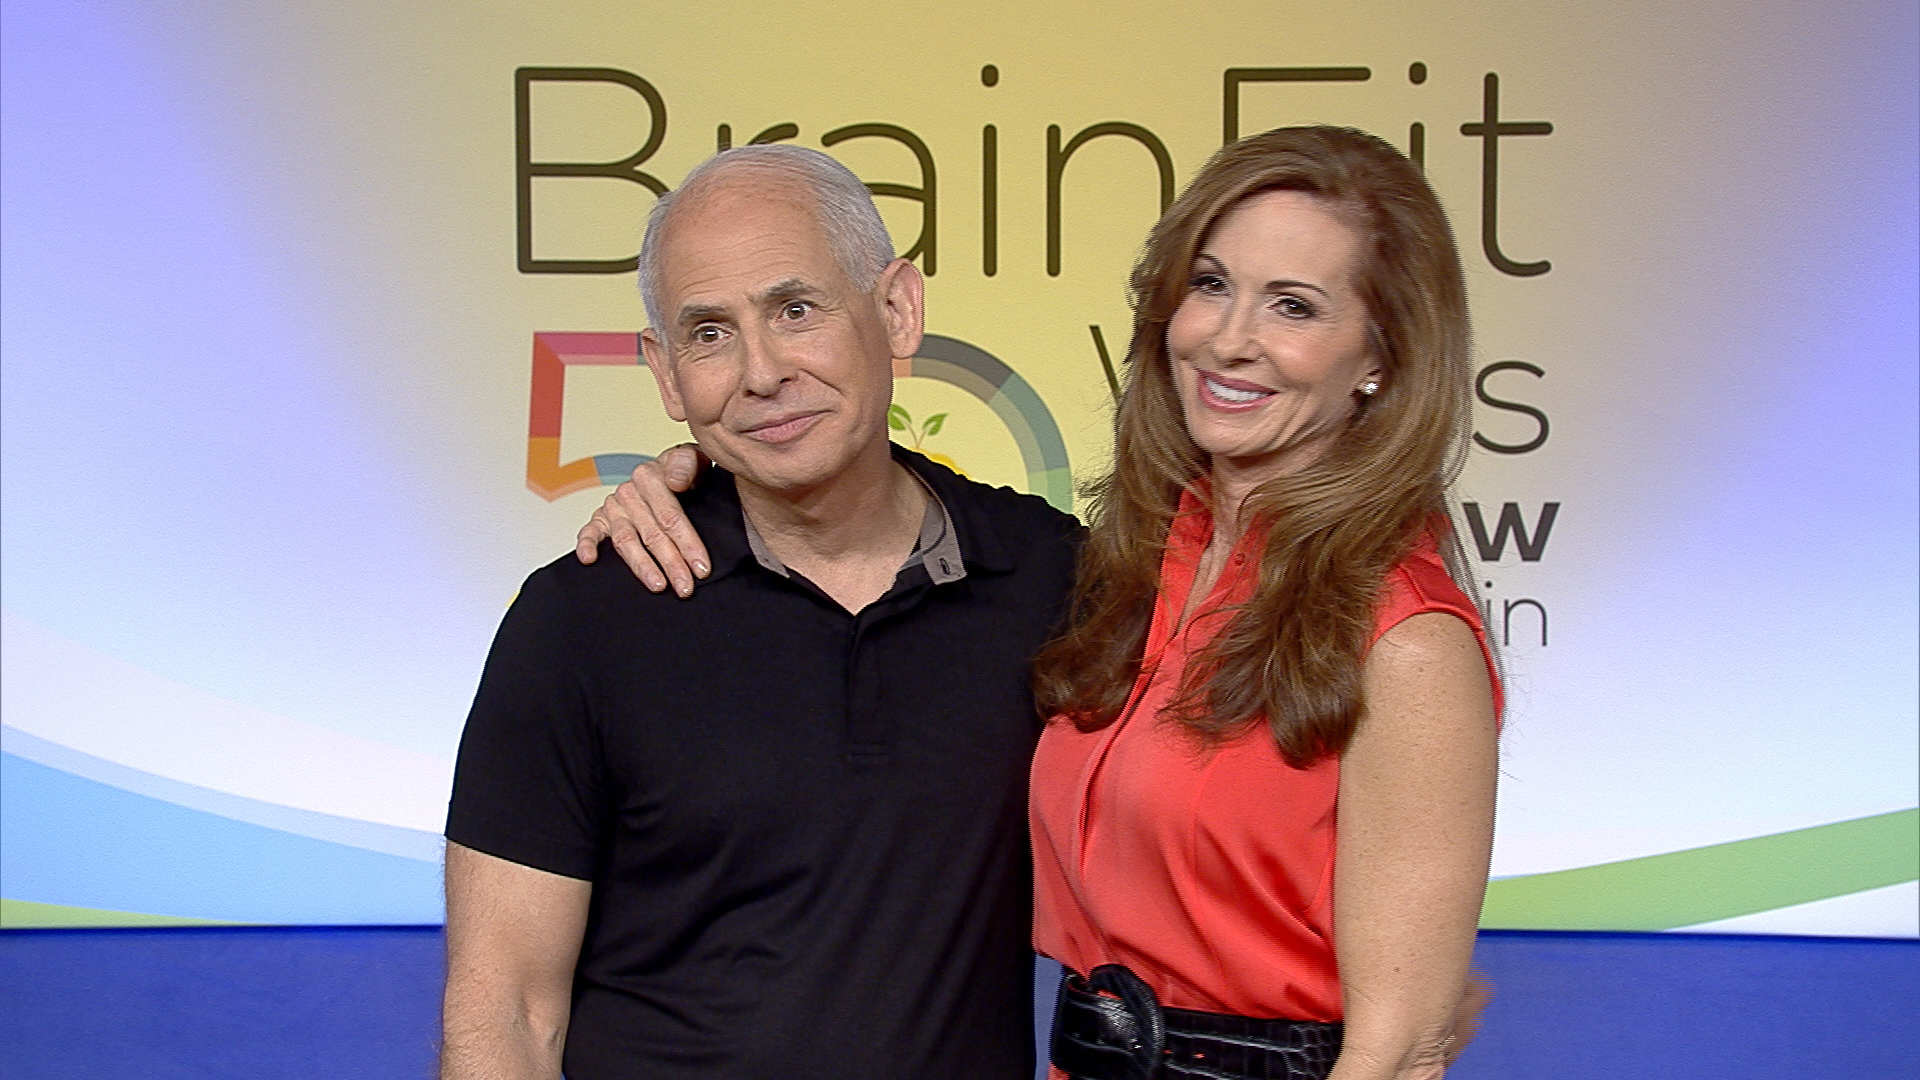 BrainFit: 50 Ways to Grow Your Brain with Daniel Amen, MD and Tana Amen, RN